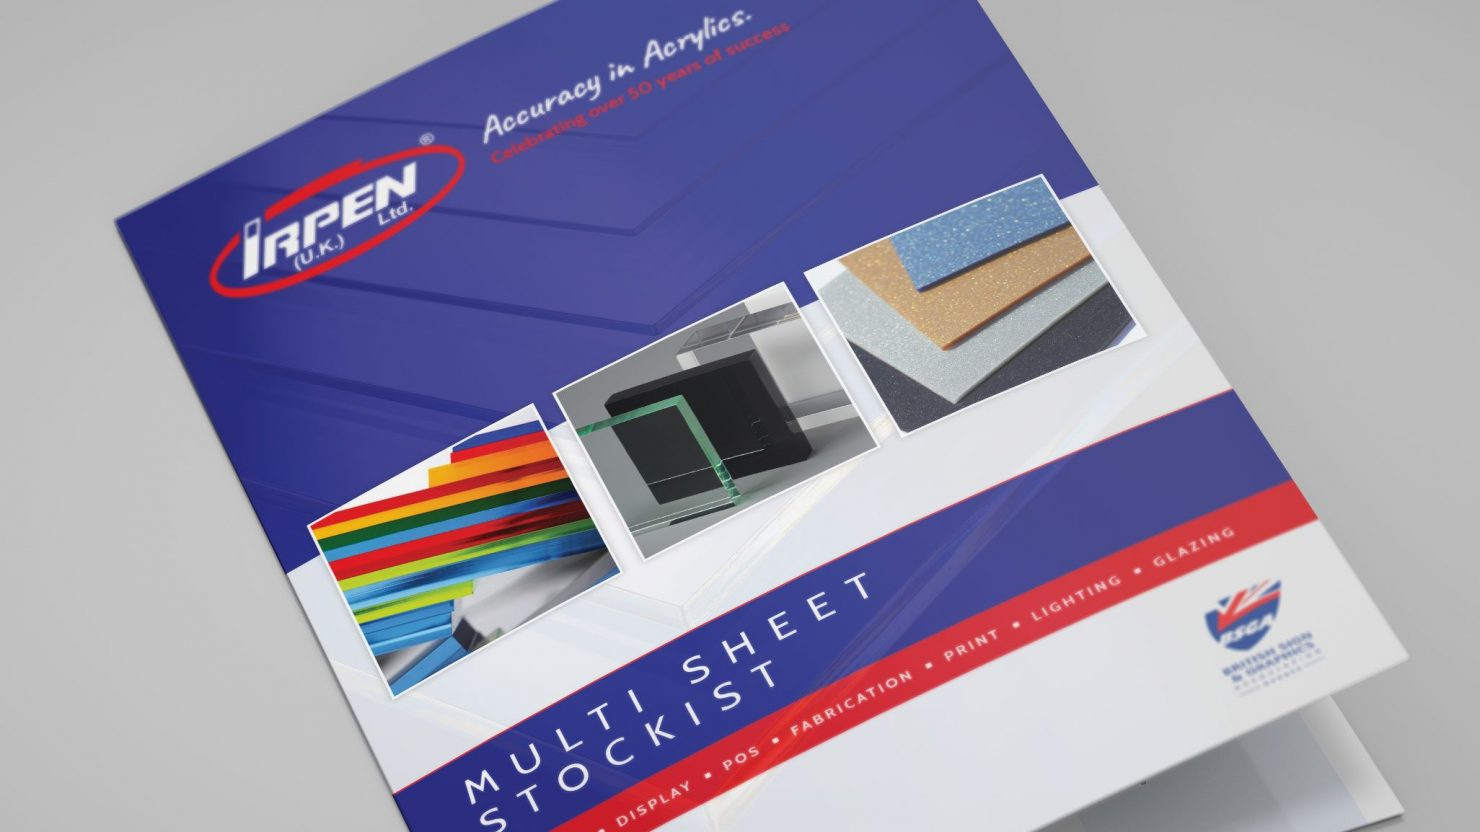 brochure design and branding example for irpen uk ltd birmingham